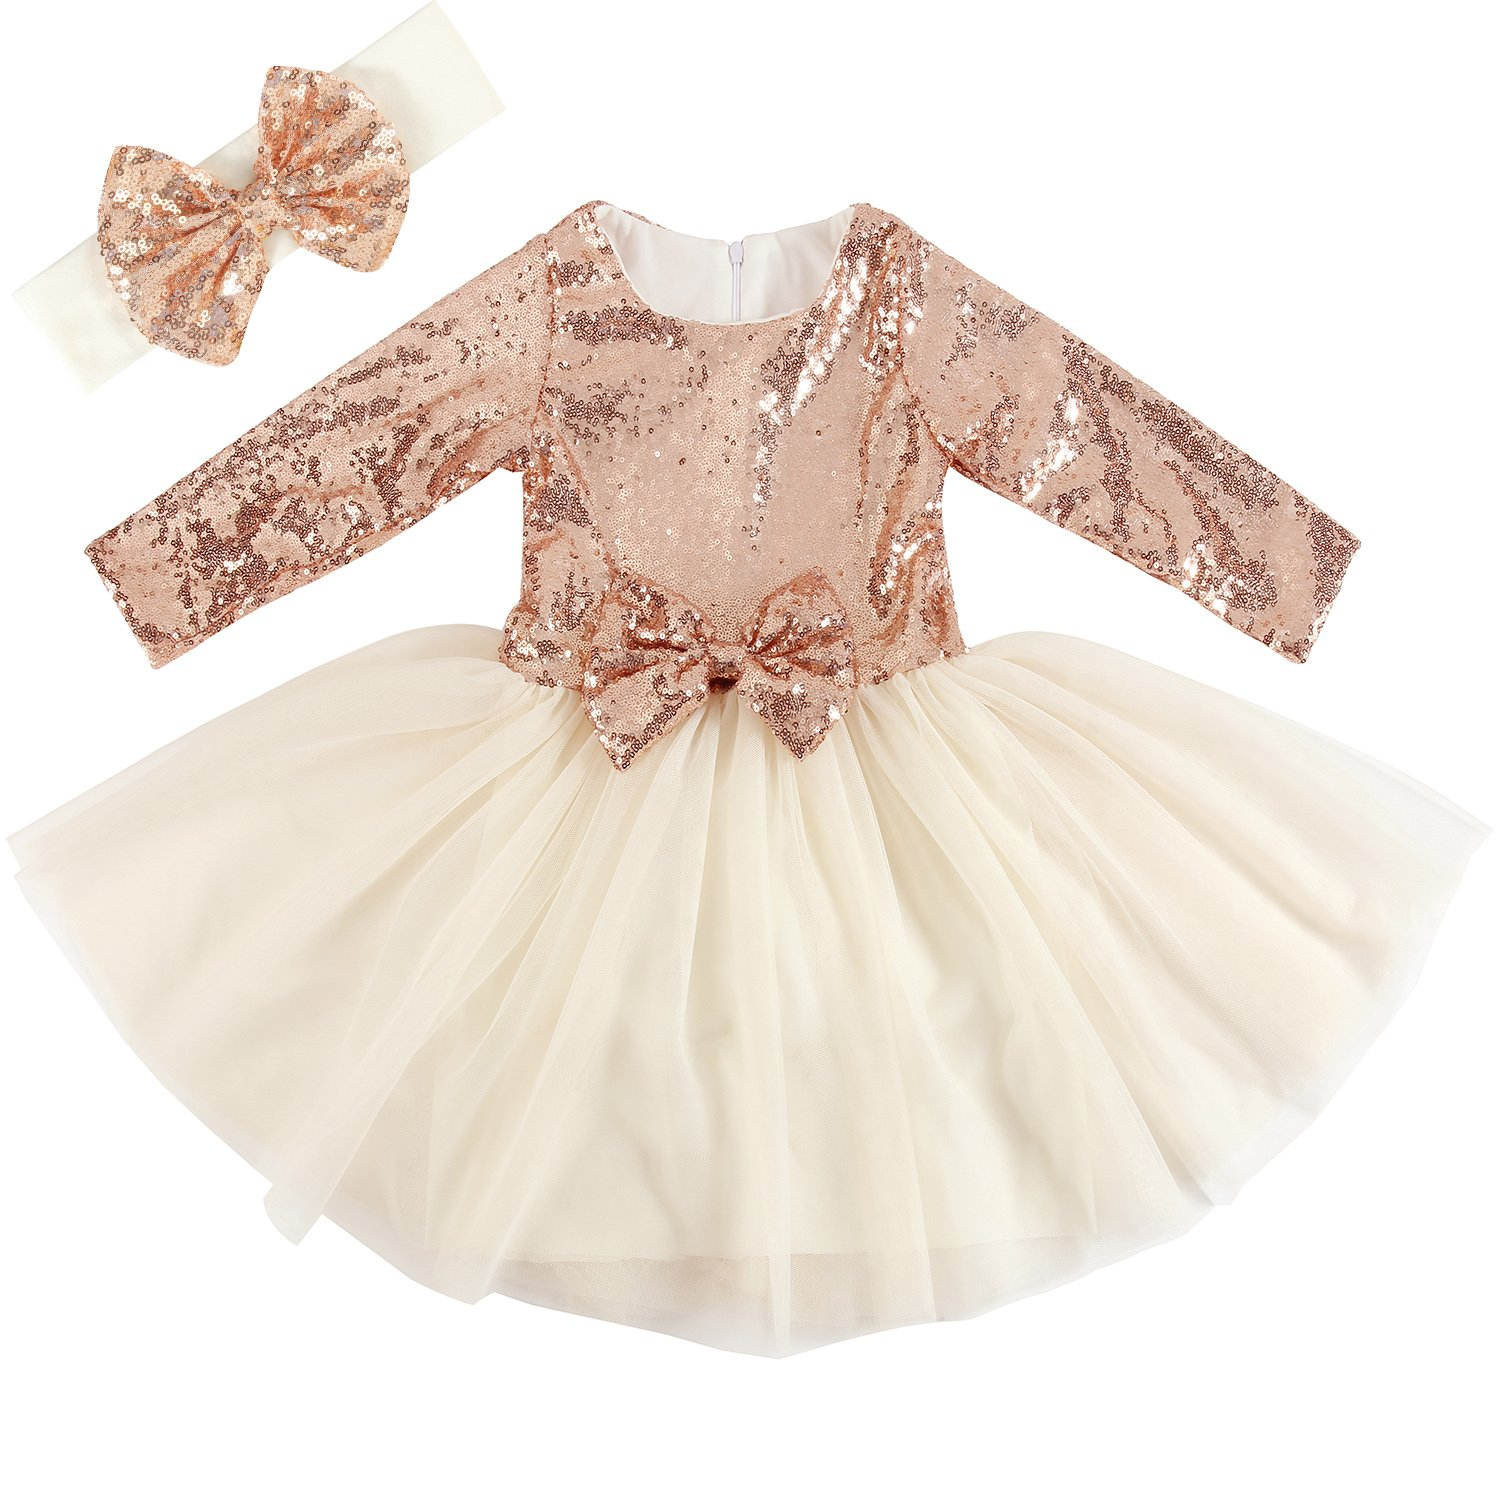 Cilucu Flower Girl Dresses Toddlers Sequin Party Dress Tutu Prom Pageant Dresses Gown Rose Gold/Offwhite CI-GSDLP02